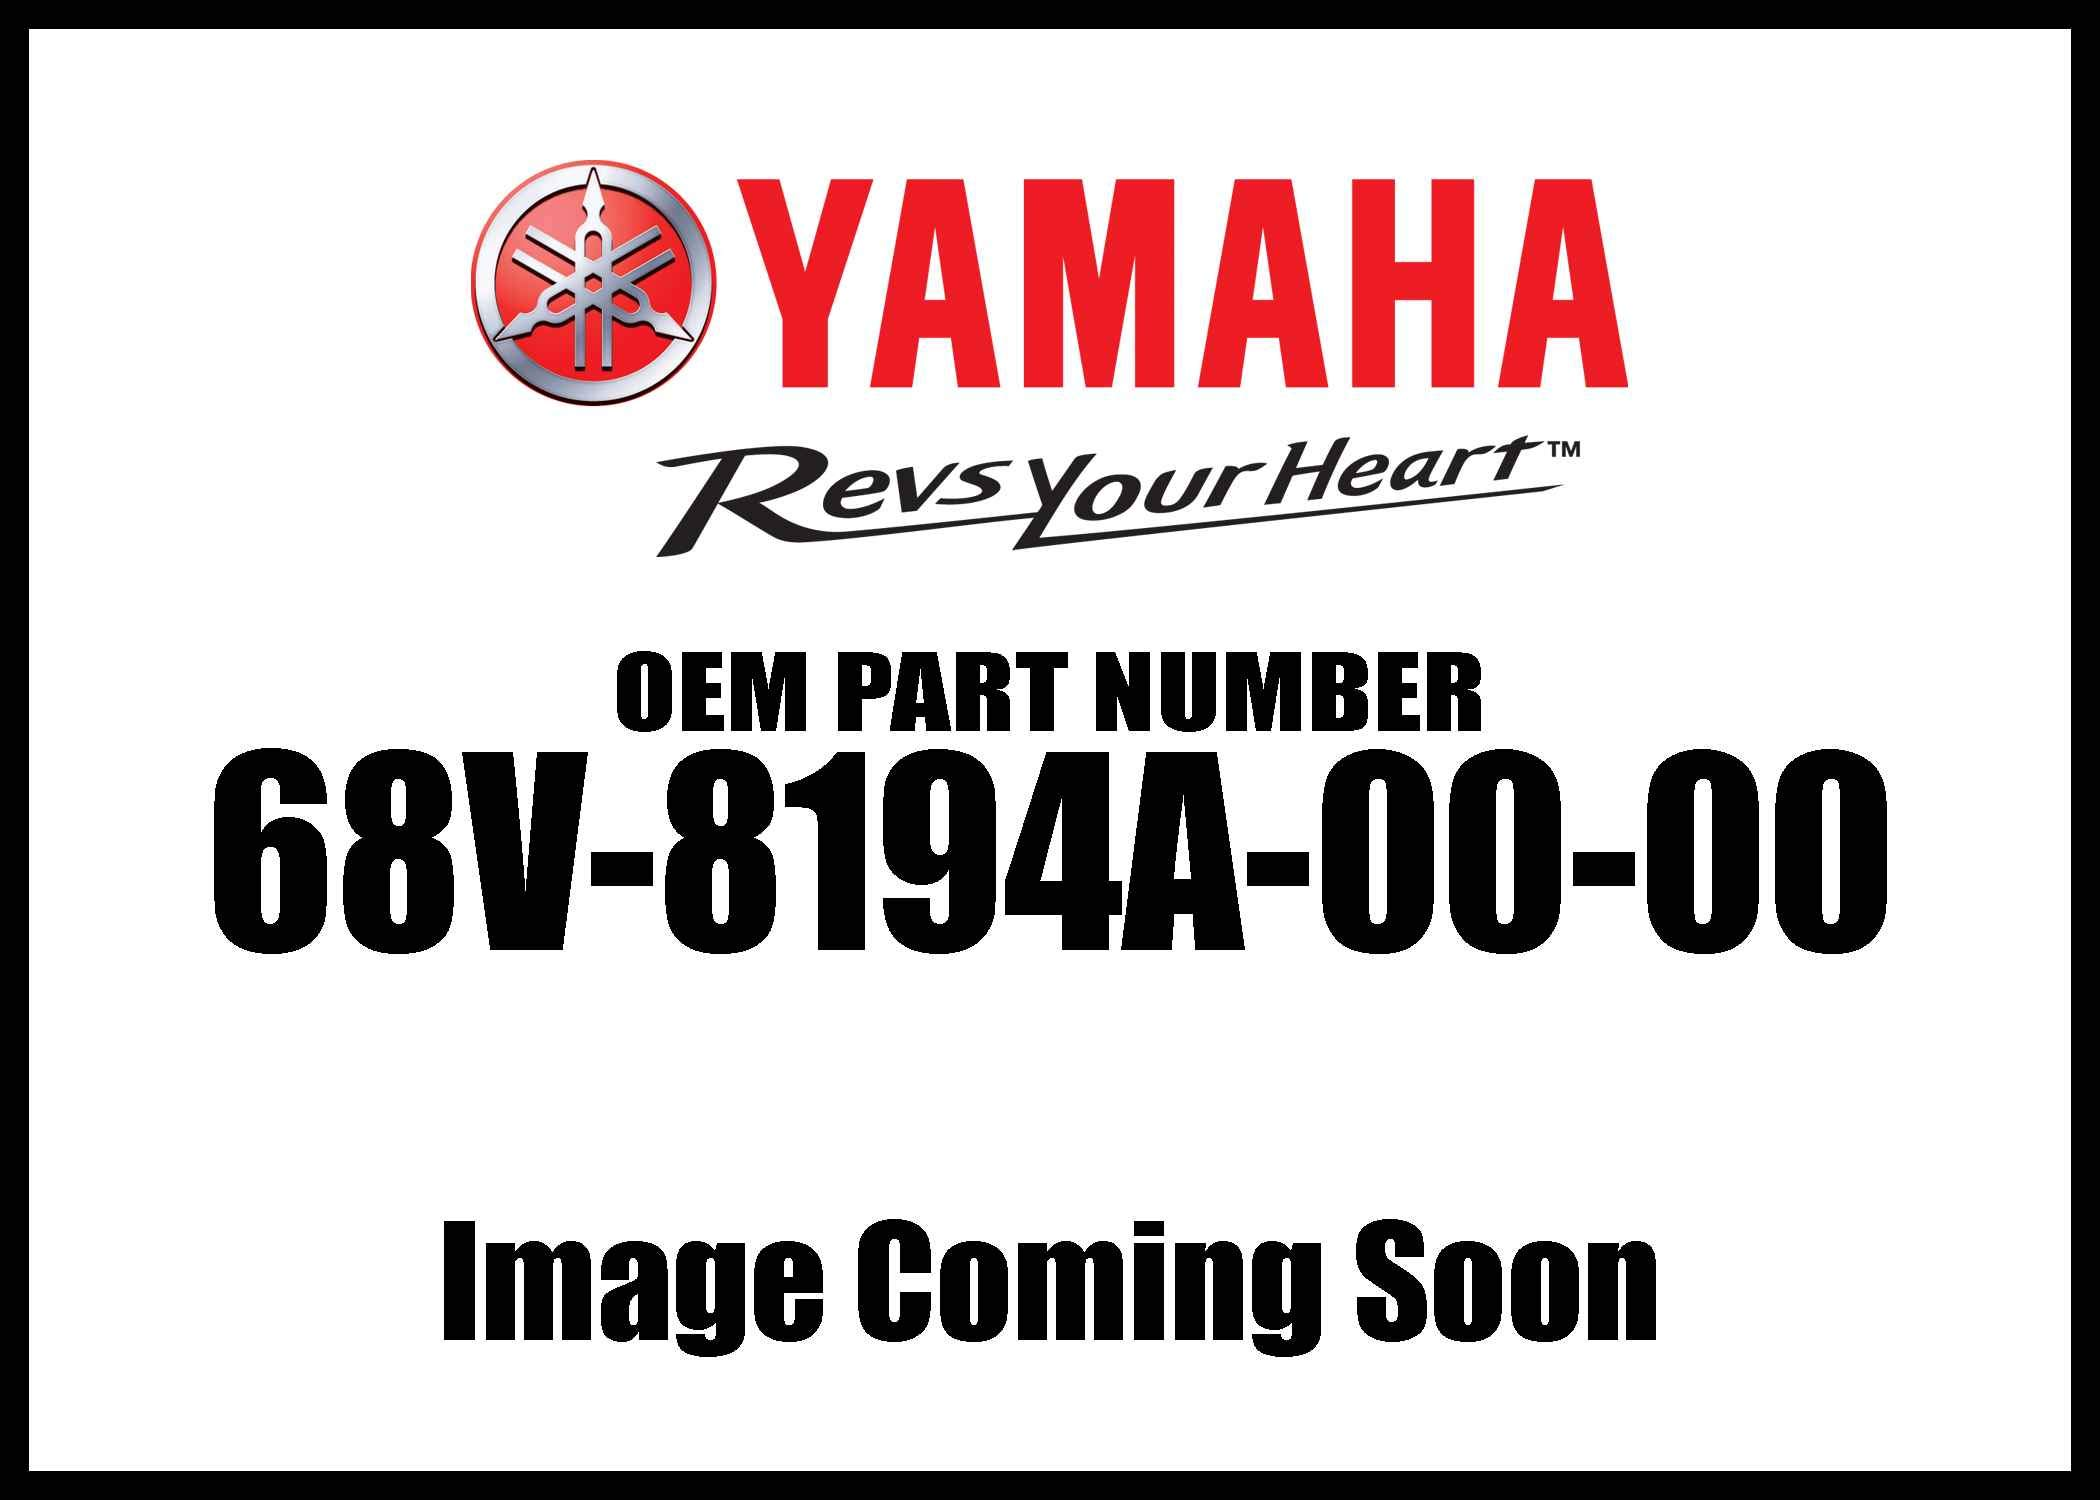 Yamaha 68V-8194A-00-00 Relay; Outboard Waverunner Sterndrive Marine Boat Parts